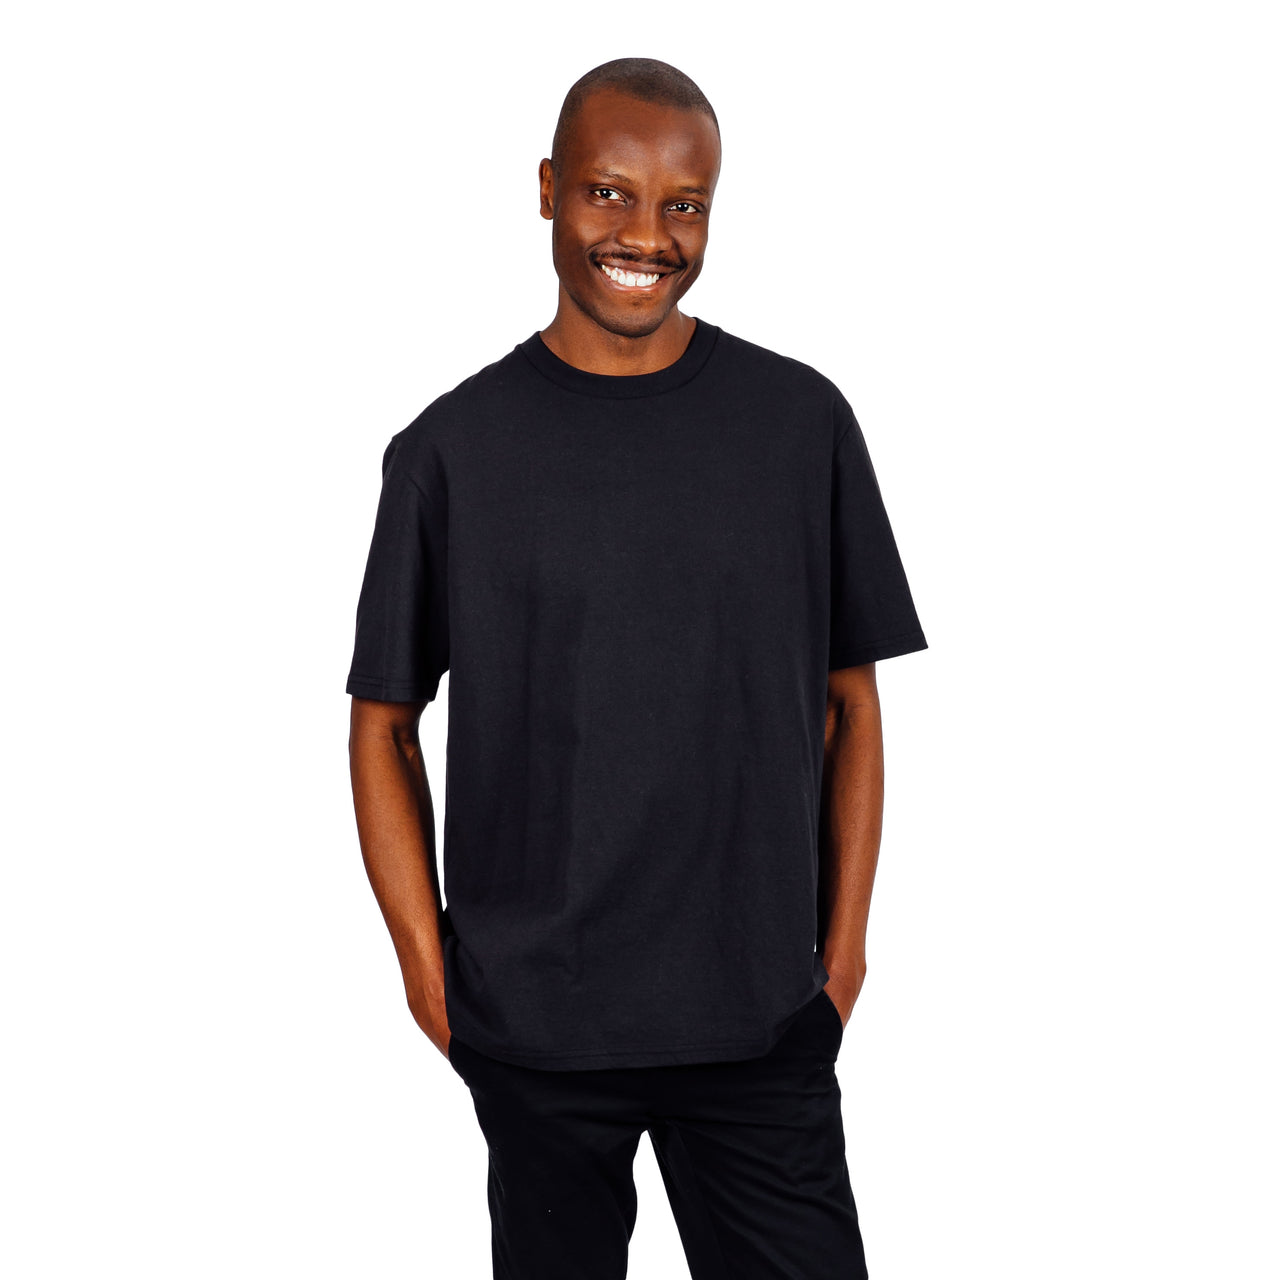 Current Fit Carded Cotton Tee - Black